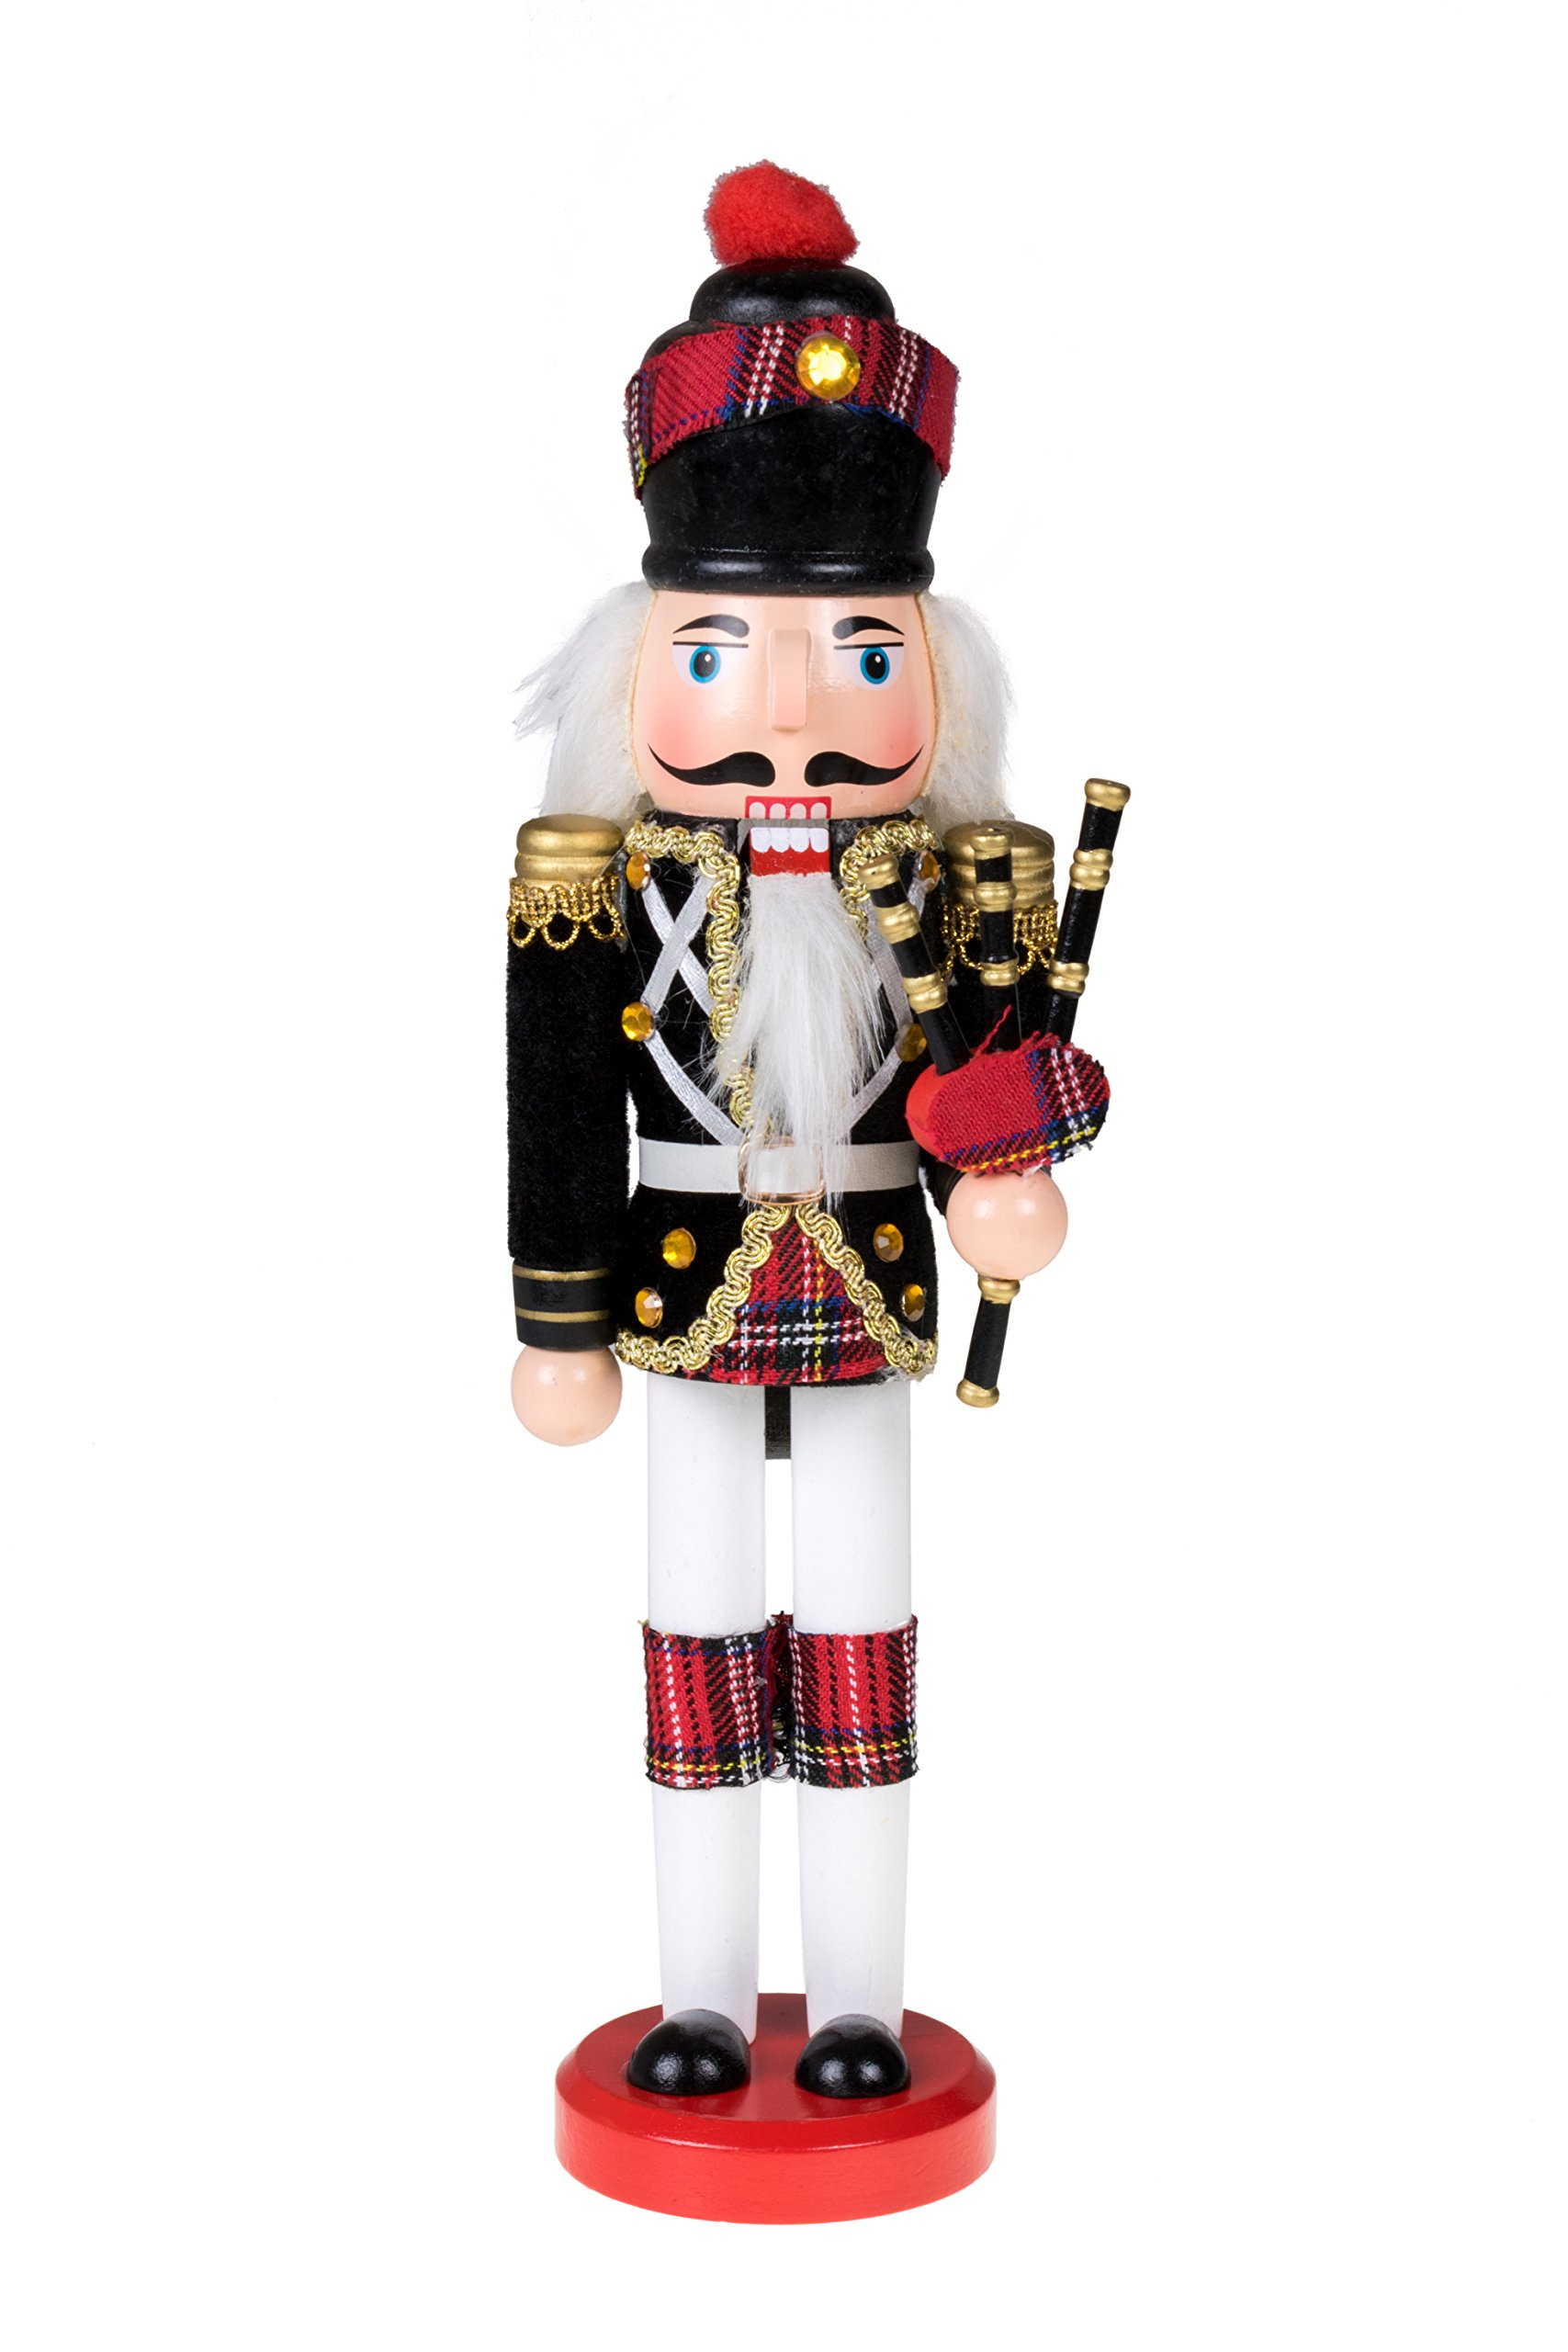 "Scottish Soldier Nutcracker by Clever Creations | Wearing Scottish Outfit and Plaid Hat | Festive Collectable Christmas Decor | Perfect for Shelves and Tables | 100% Wood | 12"" Tall with Bagpipes"